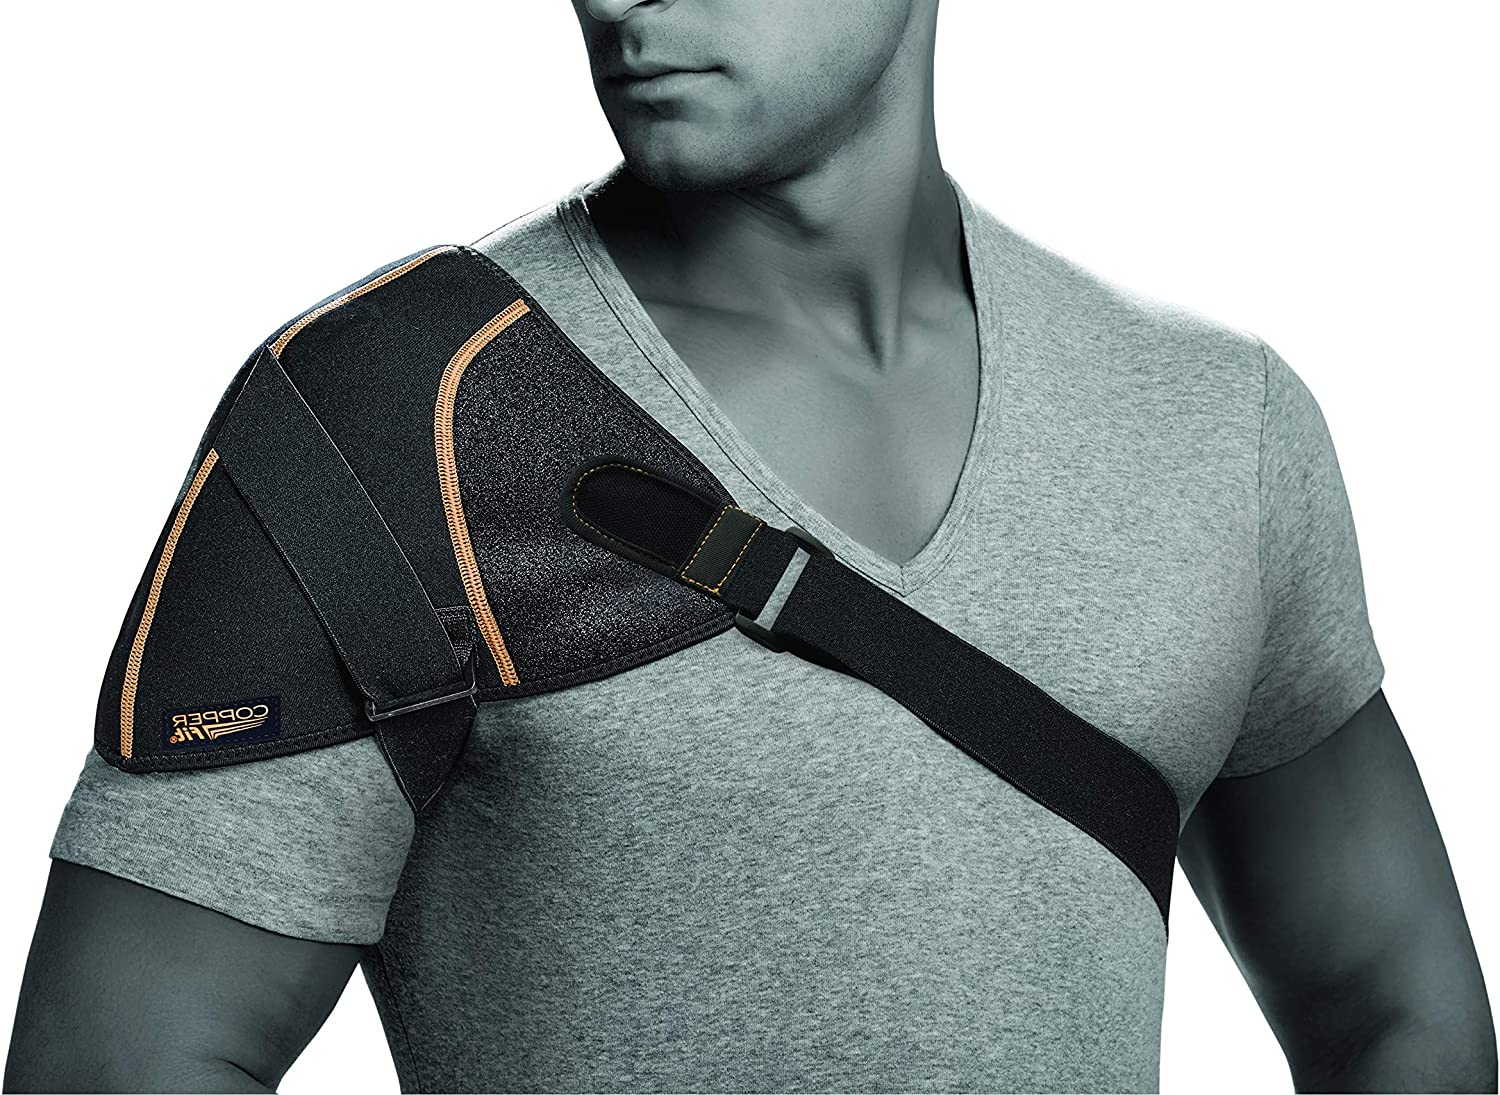 Copper Fit mens Copper Fit Rapid Relief Shoulder Wrap With Hot/Cold Ice Pack Base Layer, Black, One Size US: Clothing